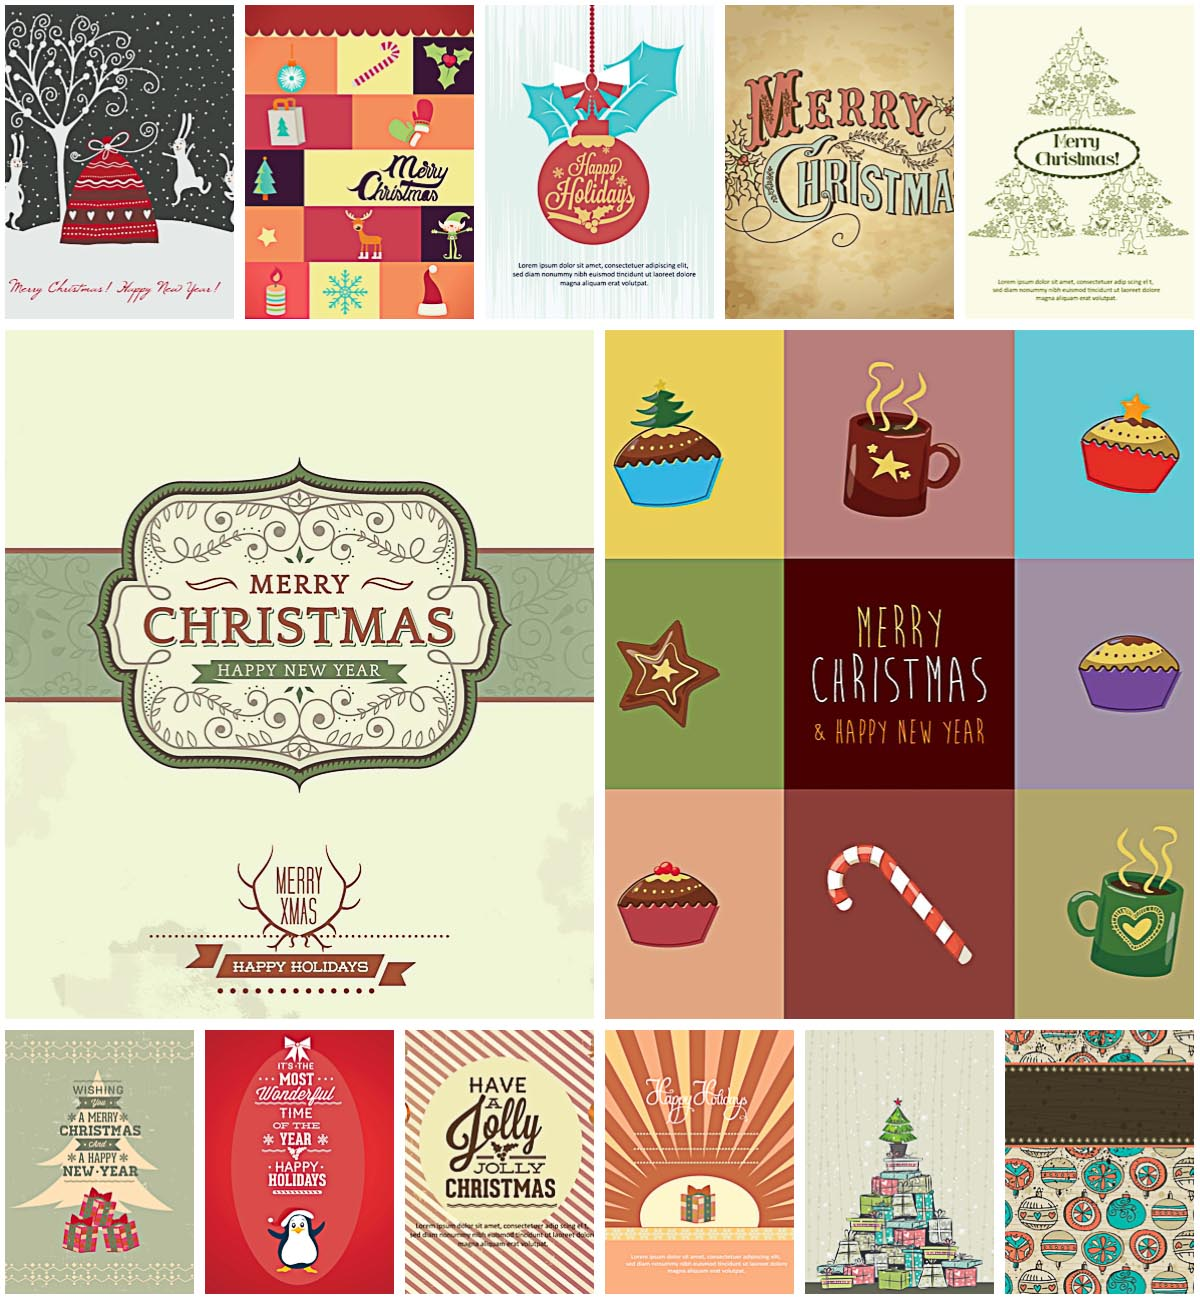 Retro winter holidays gift card set vectors